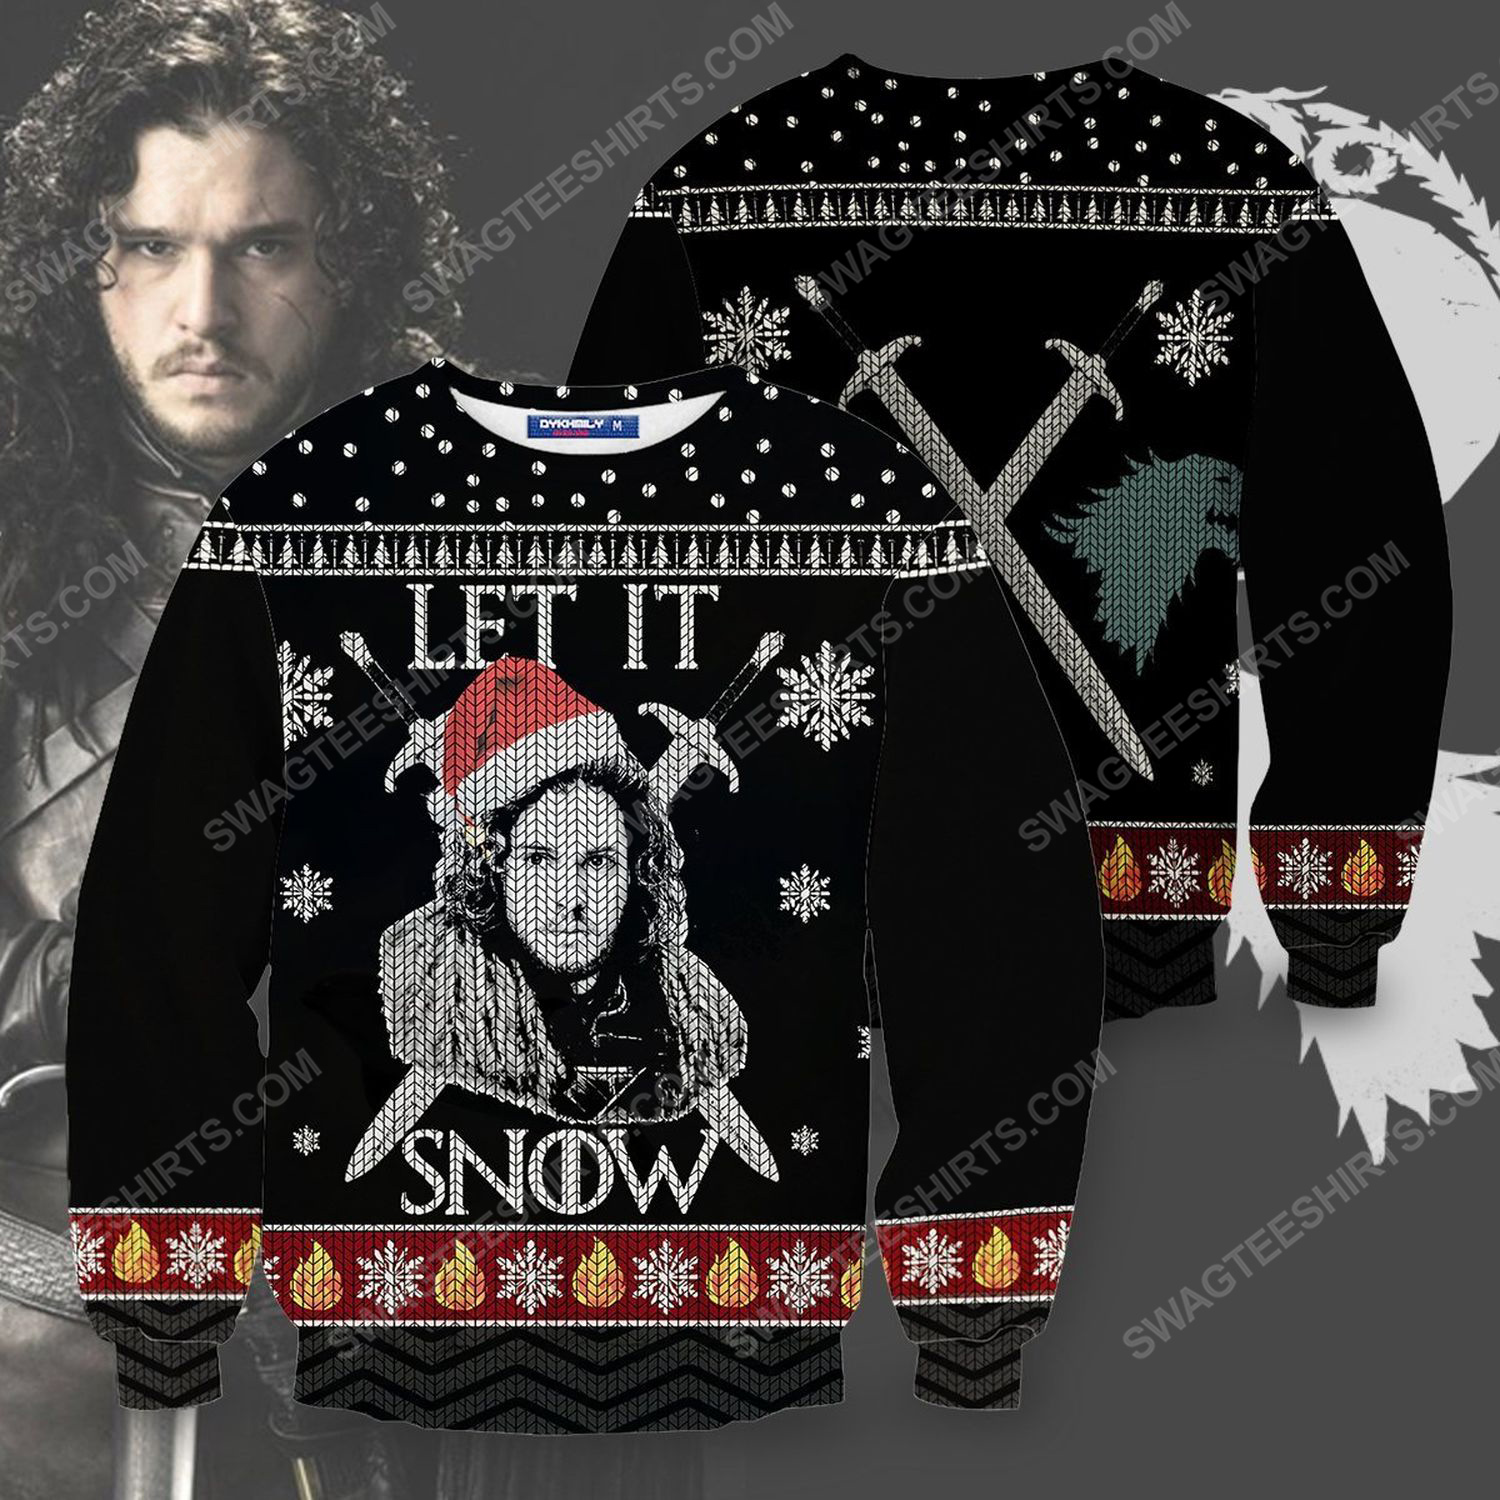 GOT let it snow jon snow for christmas time full print ugly christmas sweater 1